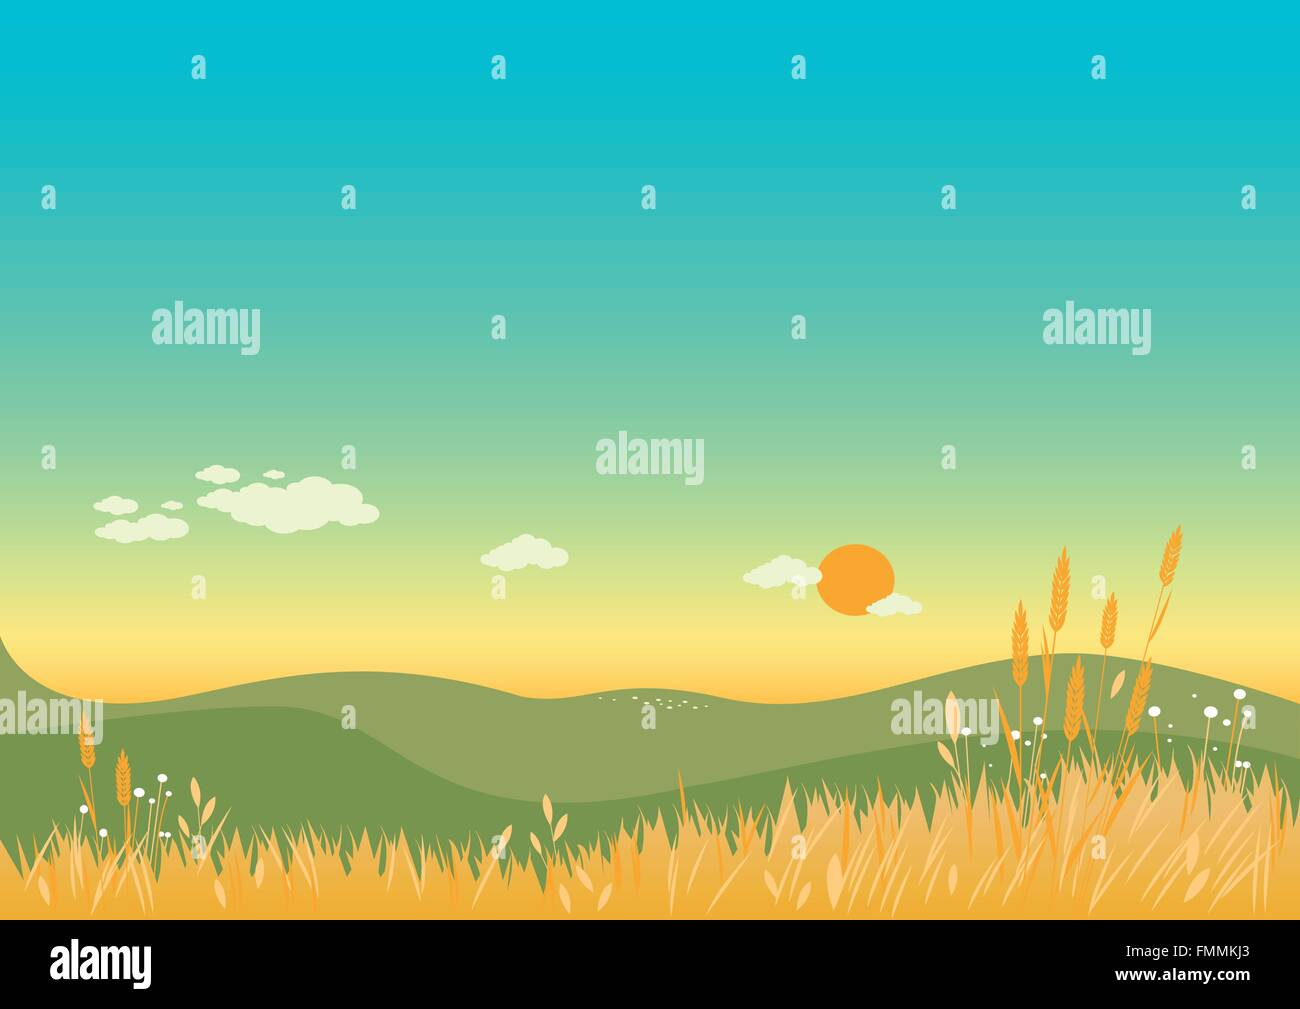 Summer landscape with flowers, wheat and grass. - Stock Vector